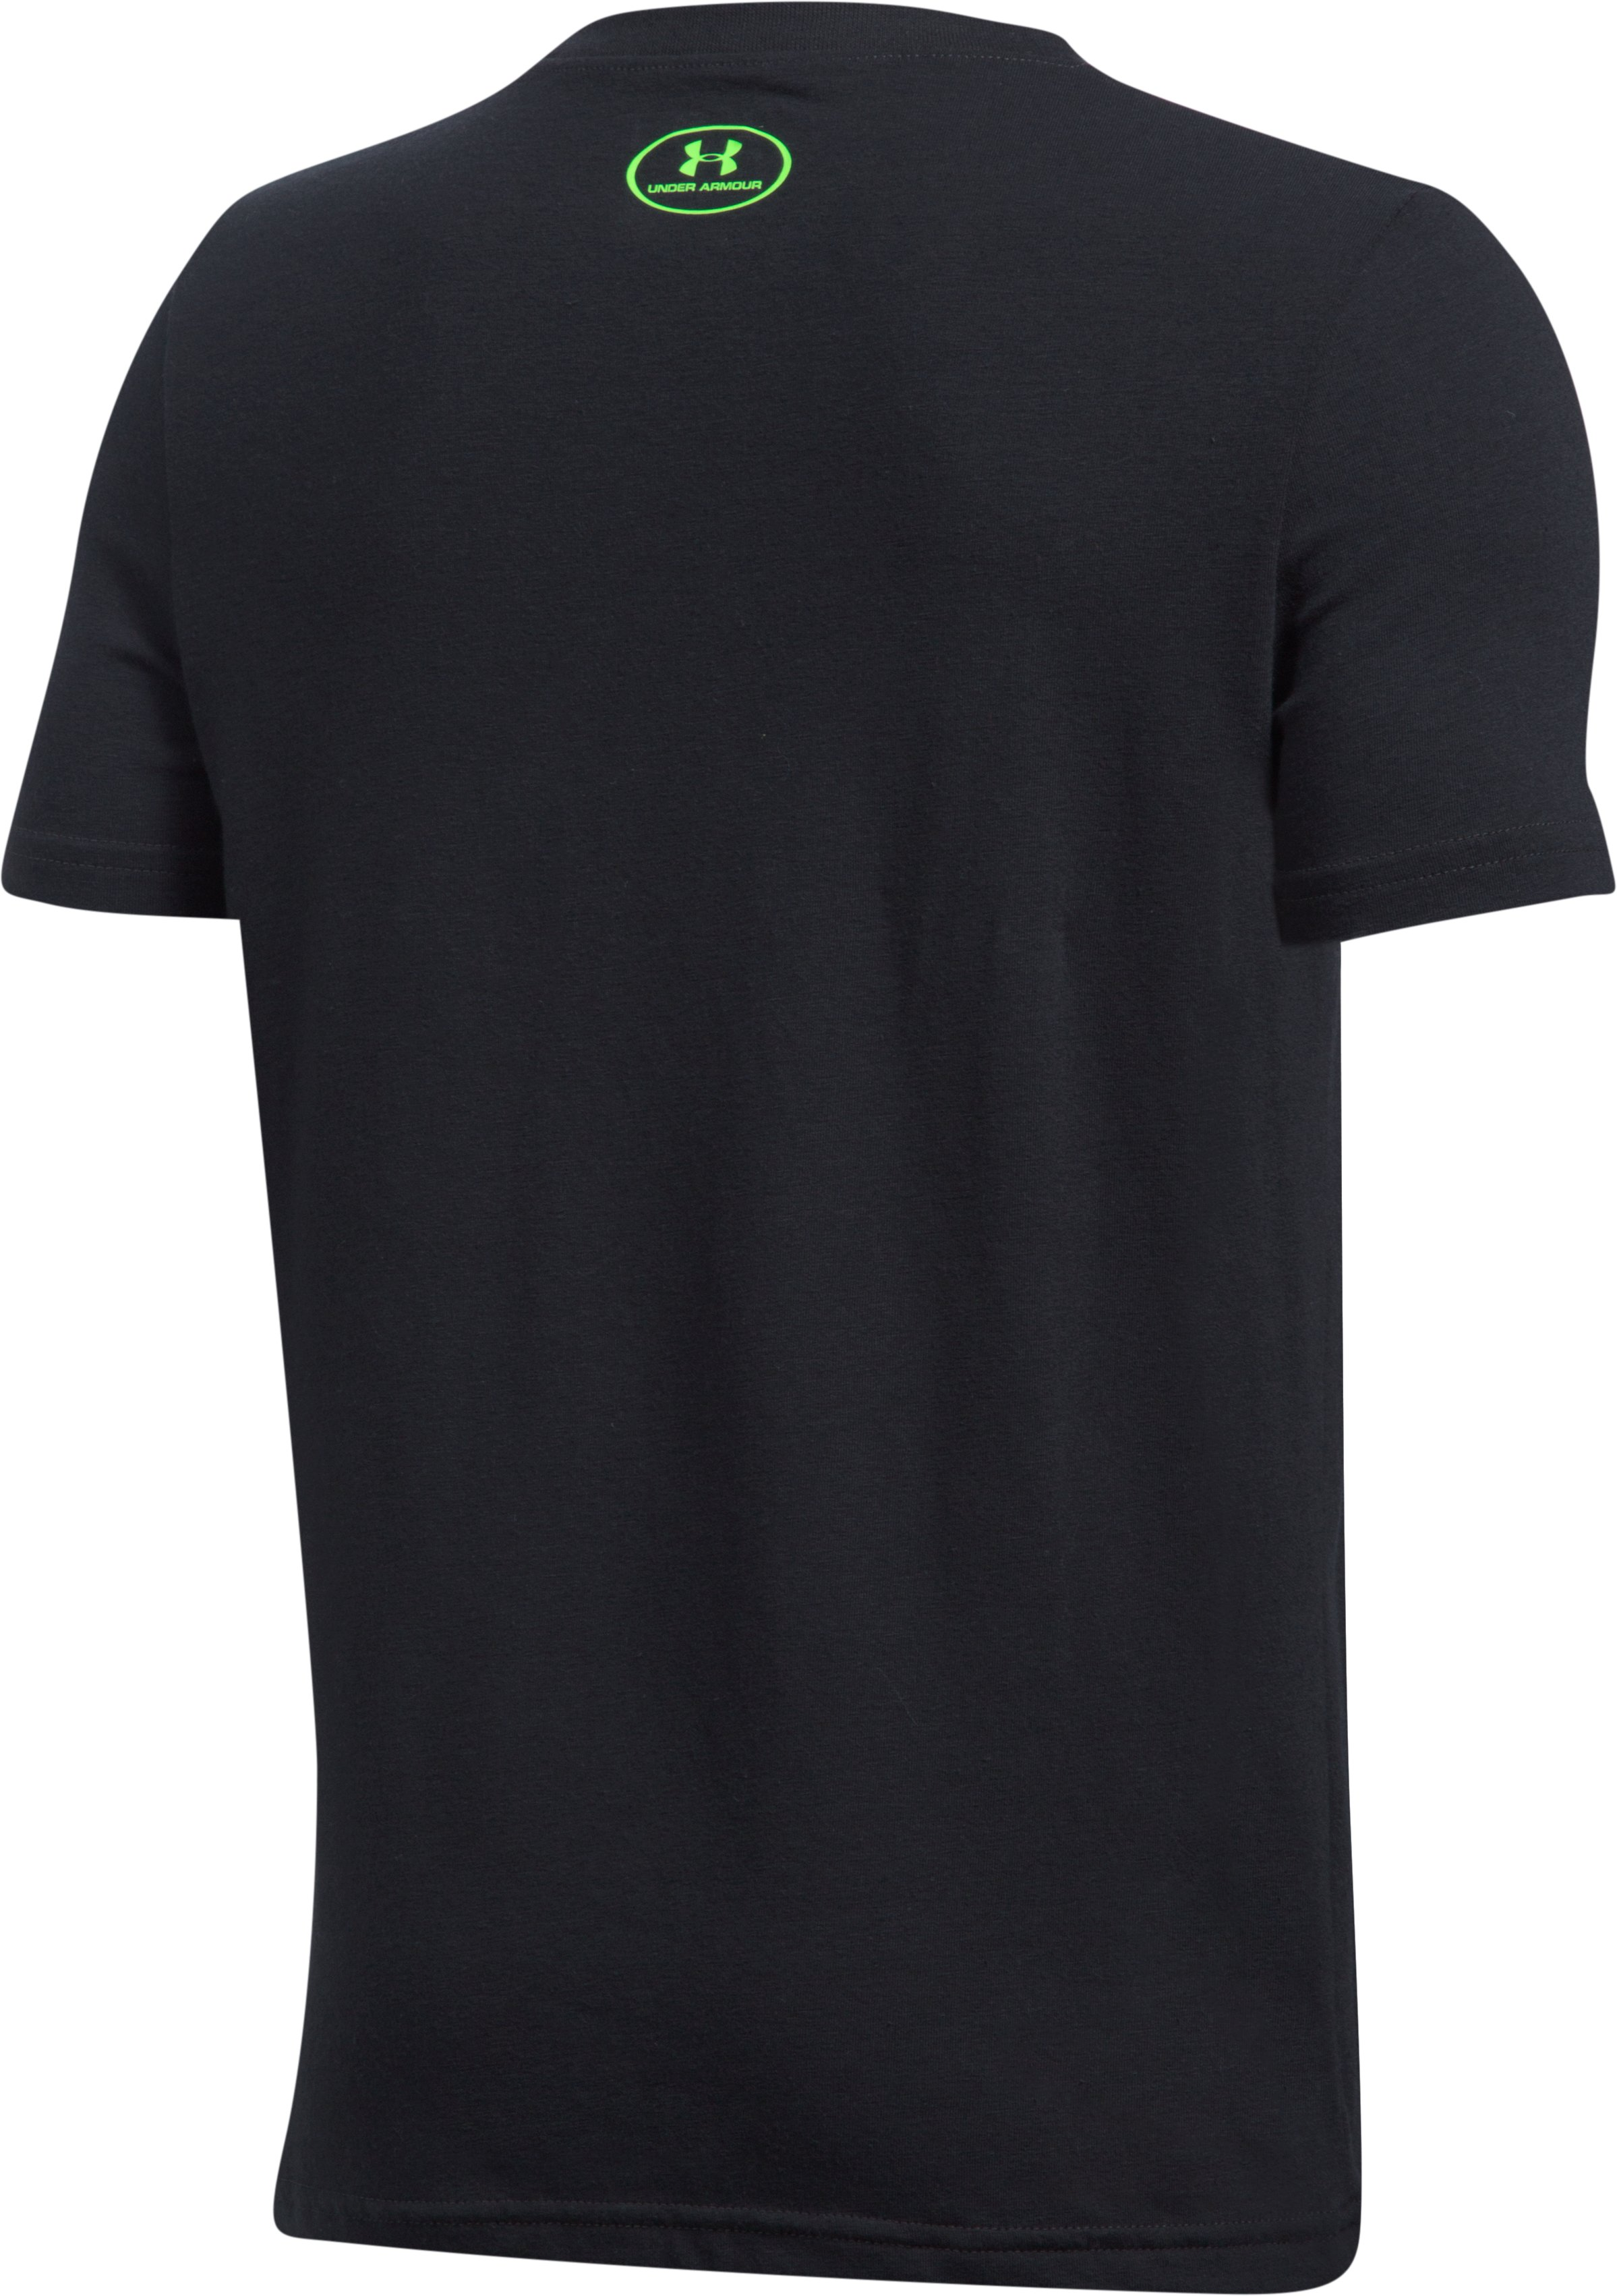 Boys' SC30 Always On T-Shirt, Black , undefined